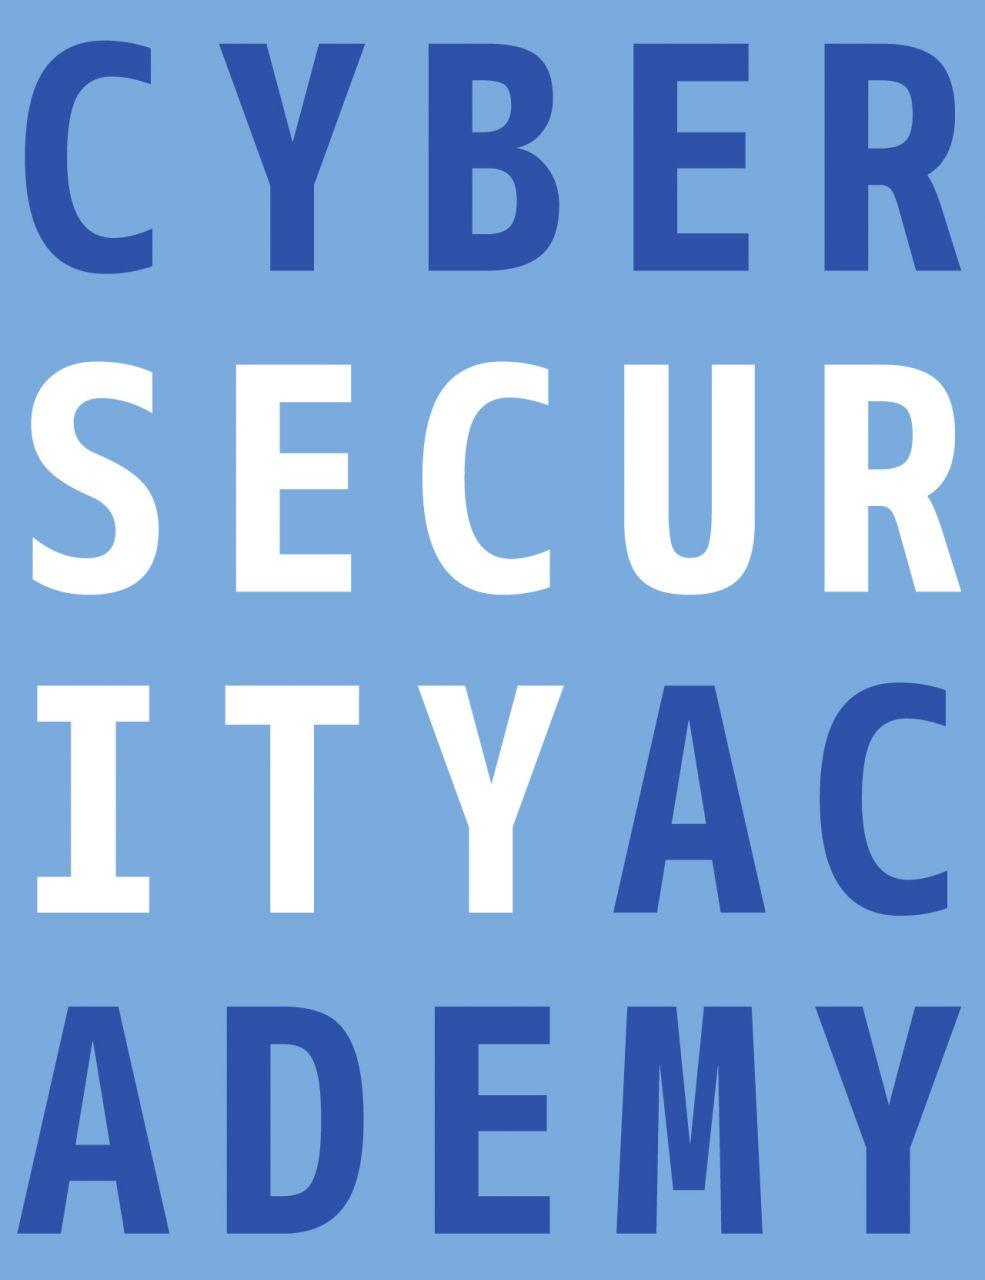 Cyber Security Academy - The Hague Security Delta